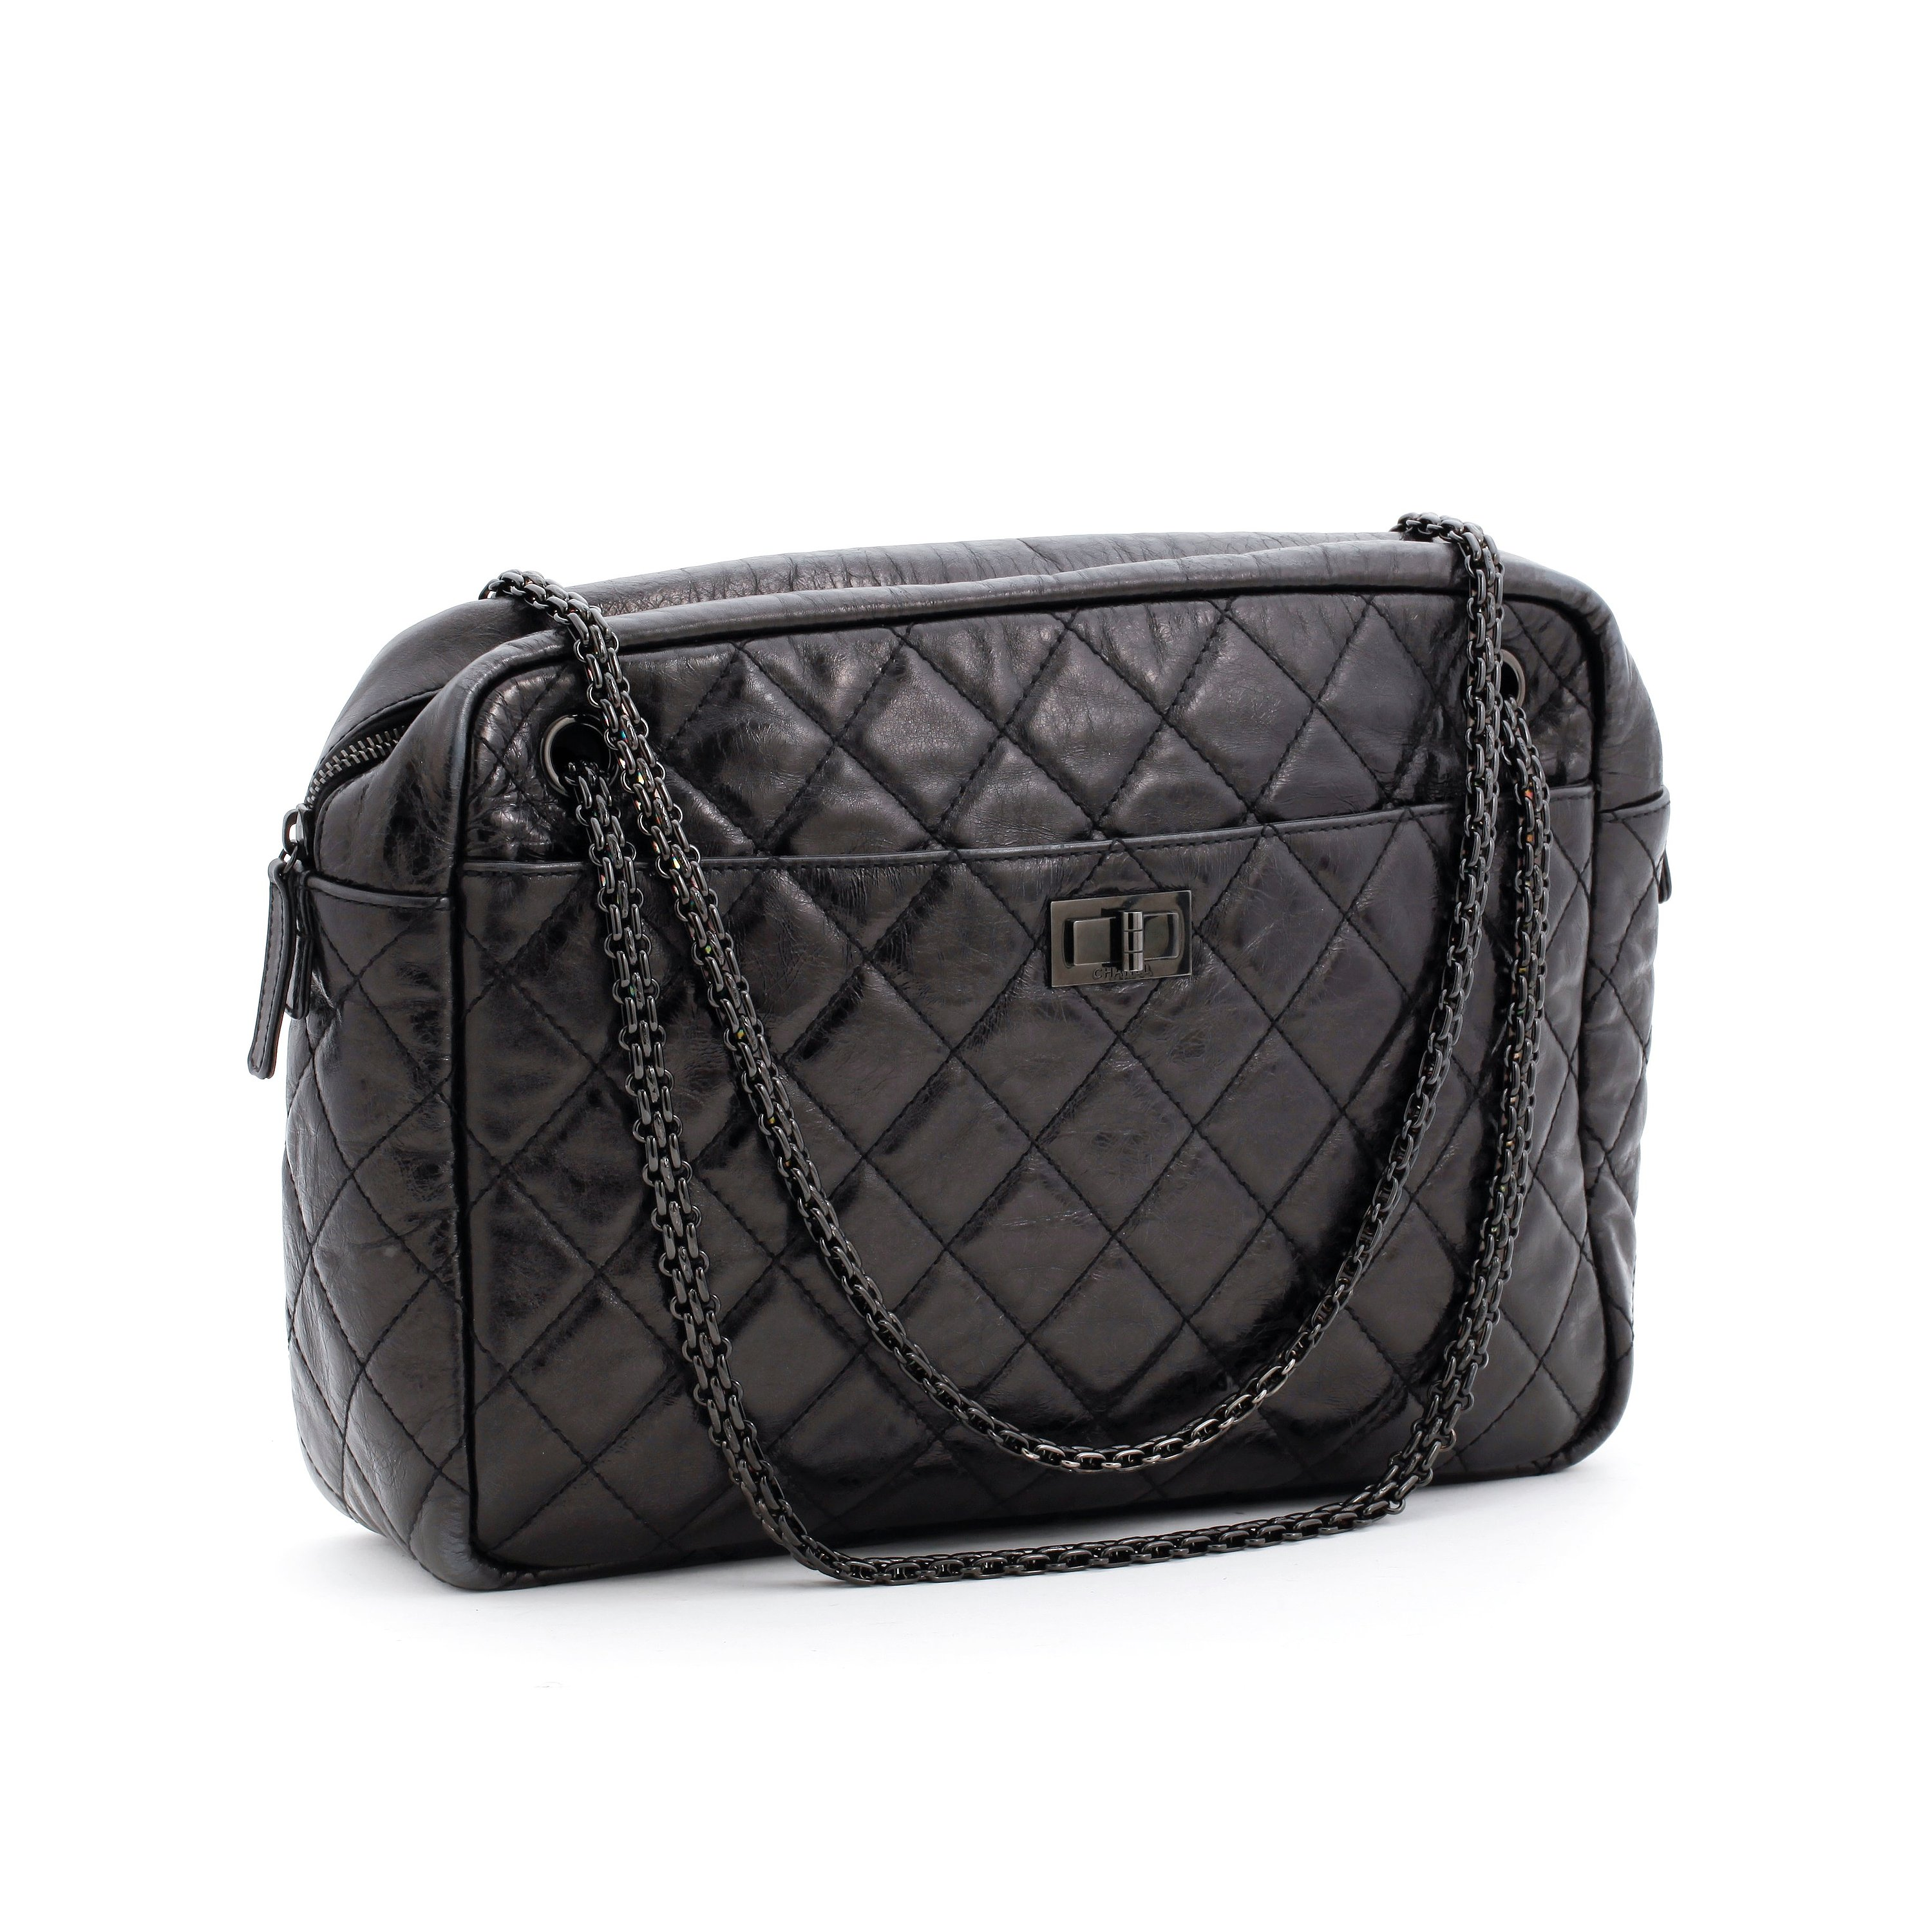 67be245ff140 CHANEL, a quilted black leather shoulder bag,